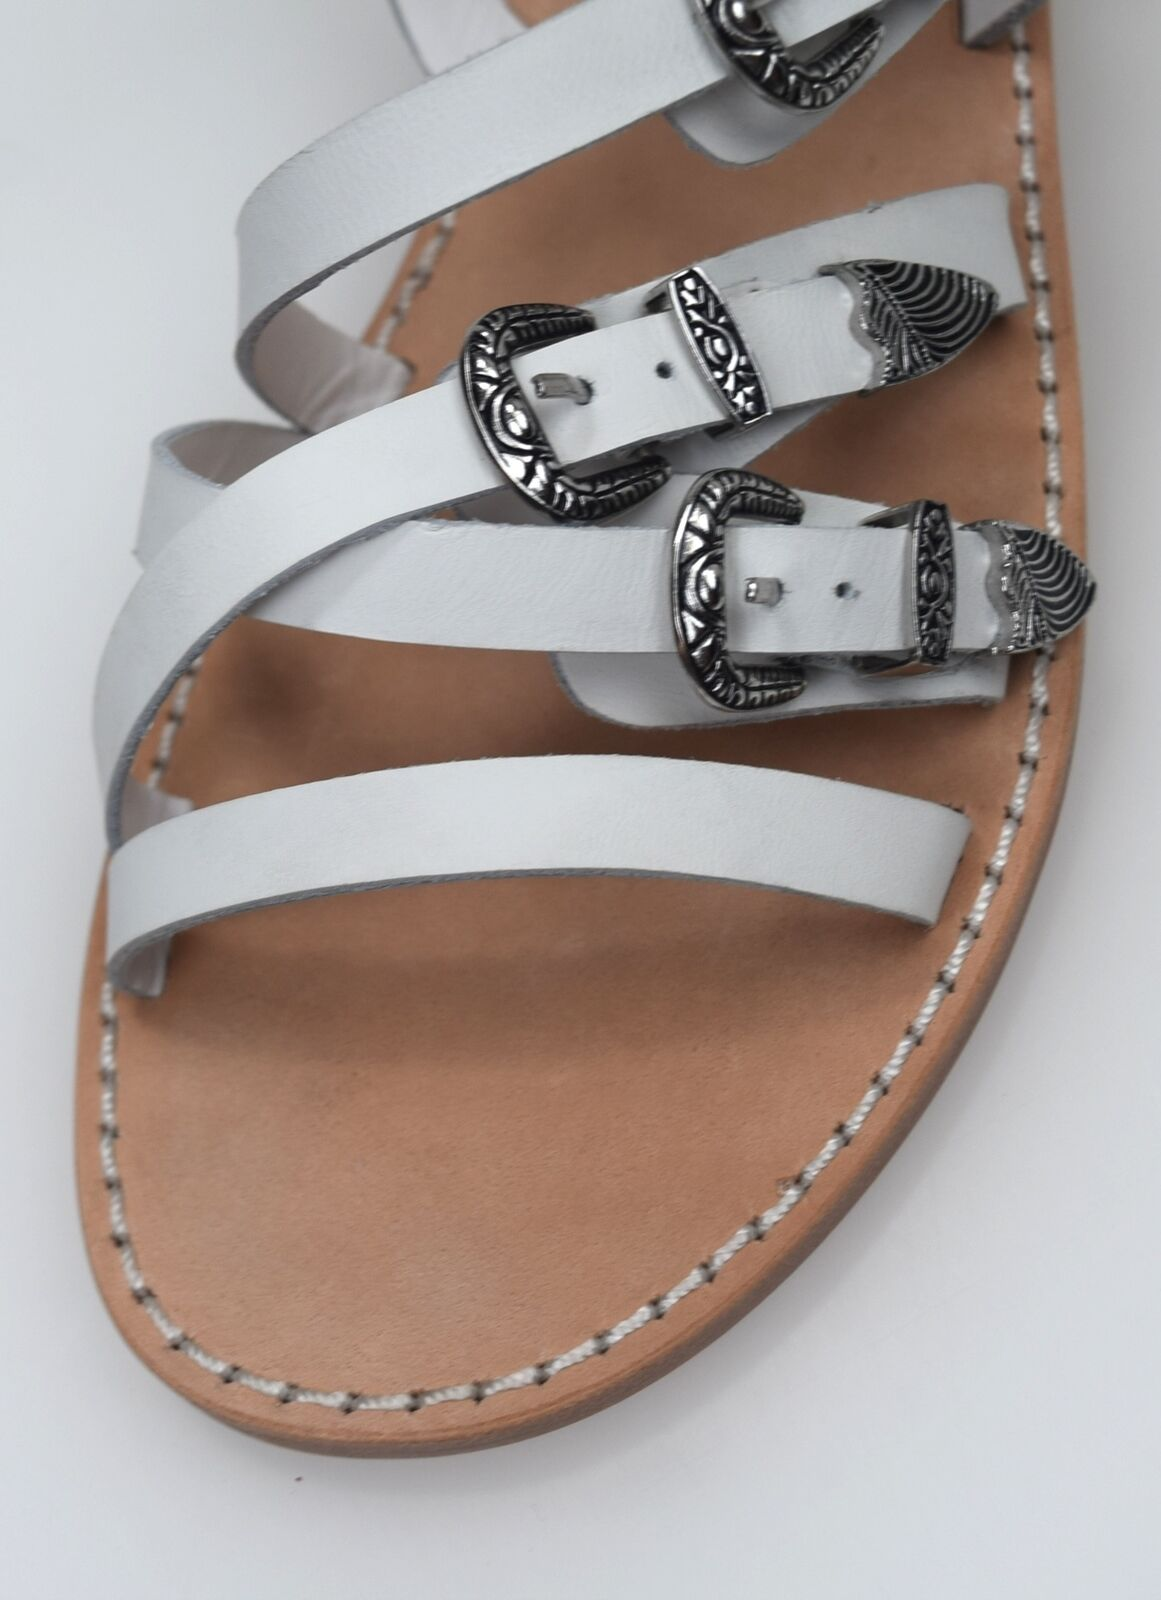 ASH WOMAN FLAT SANDALS chaussures chaussures chaussures CASUAL LEATHER CODE PENELOPE SS15 M 107986 001 fece87